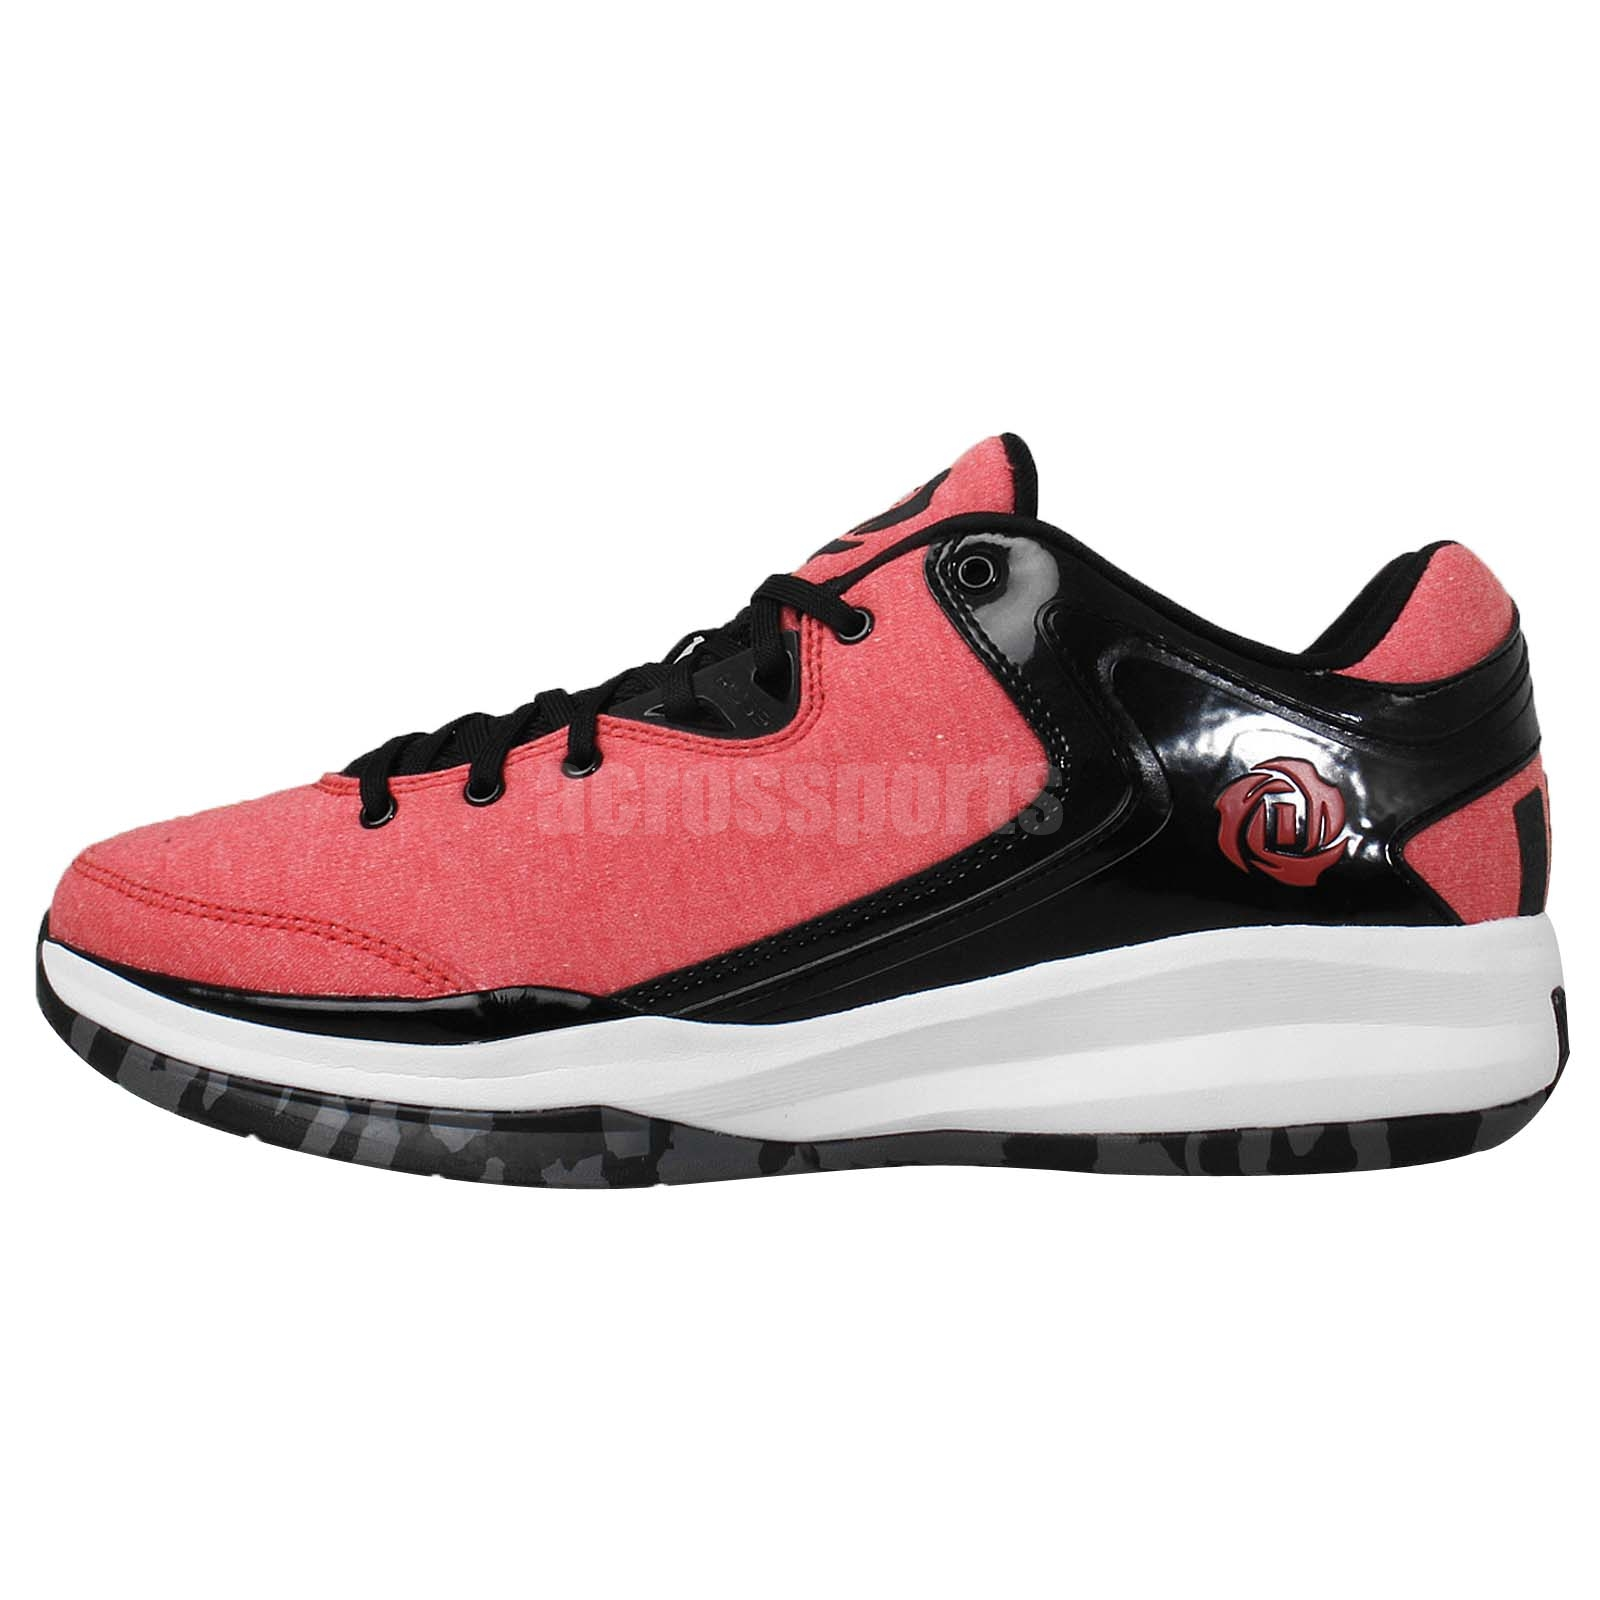 Adidas D Rose Englewood III Low 3 Derrick Rose Mens Basketball Shoes Pick 1 | eBay